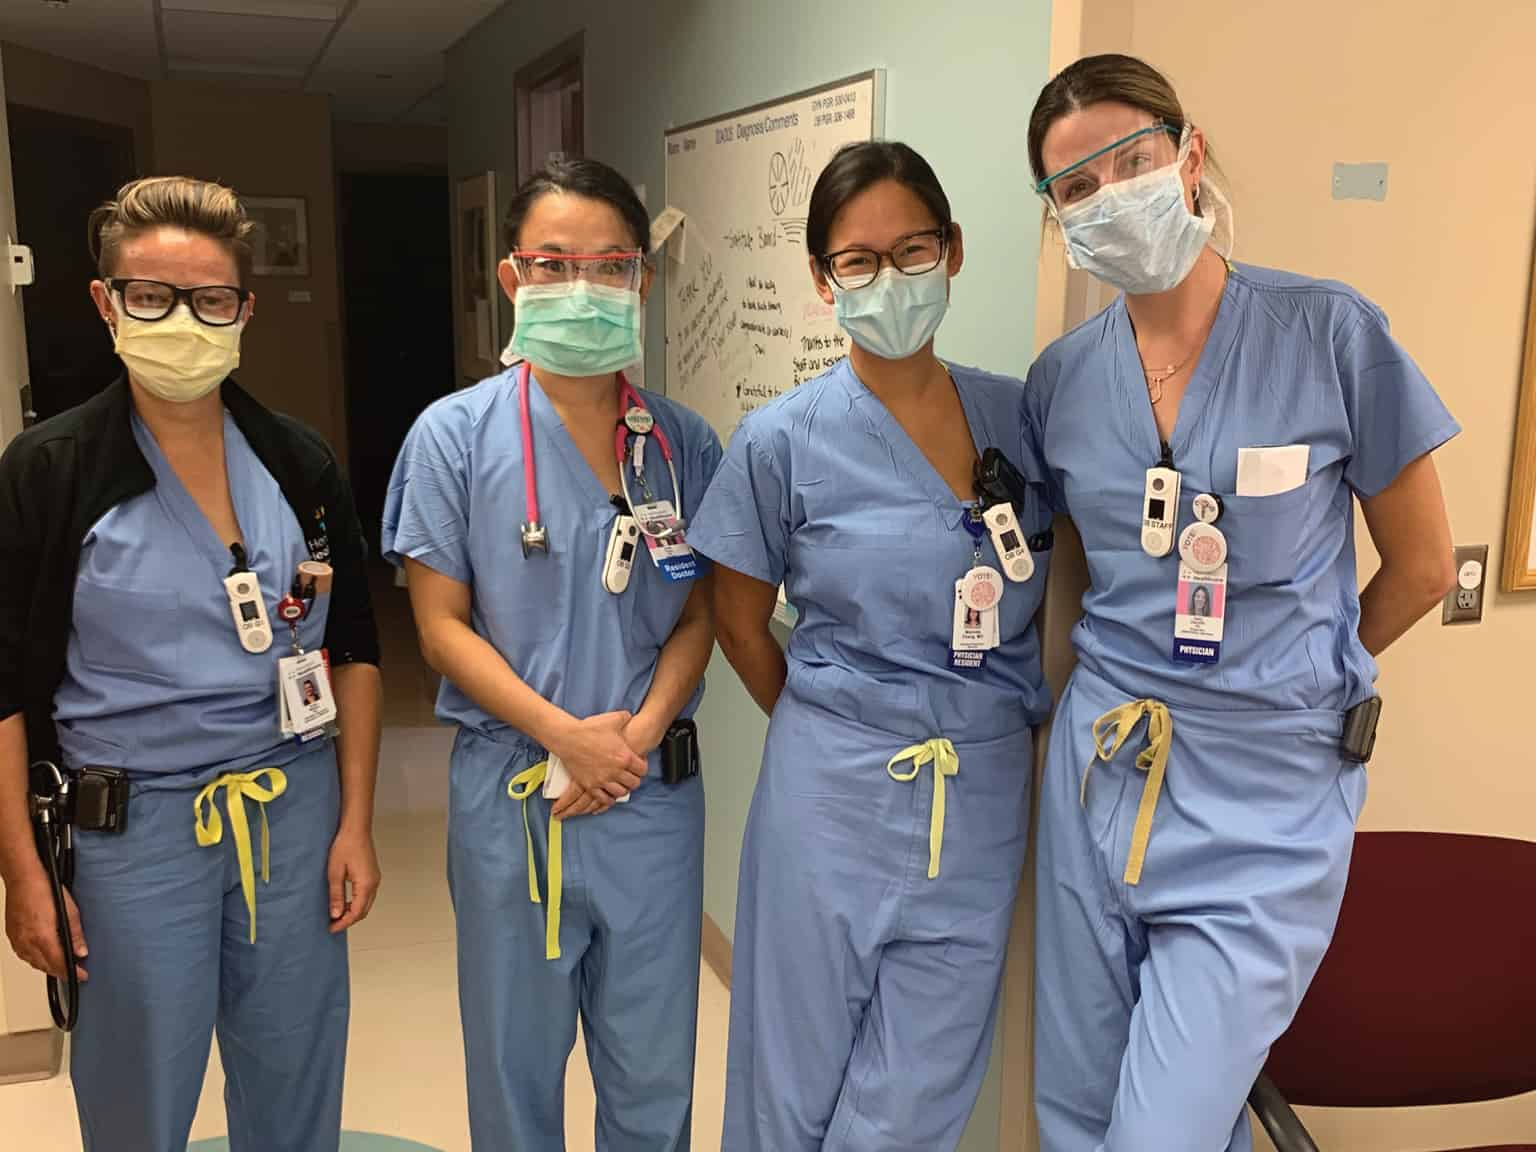 birth center team providers in scrubs